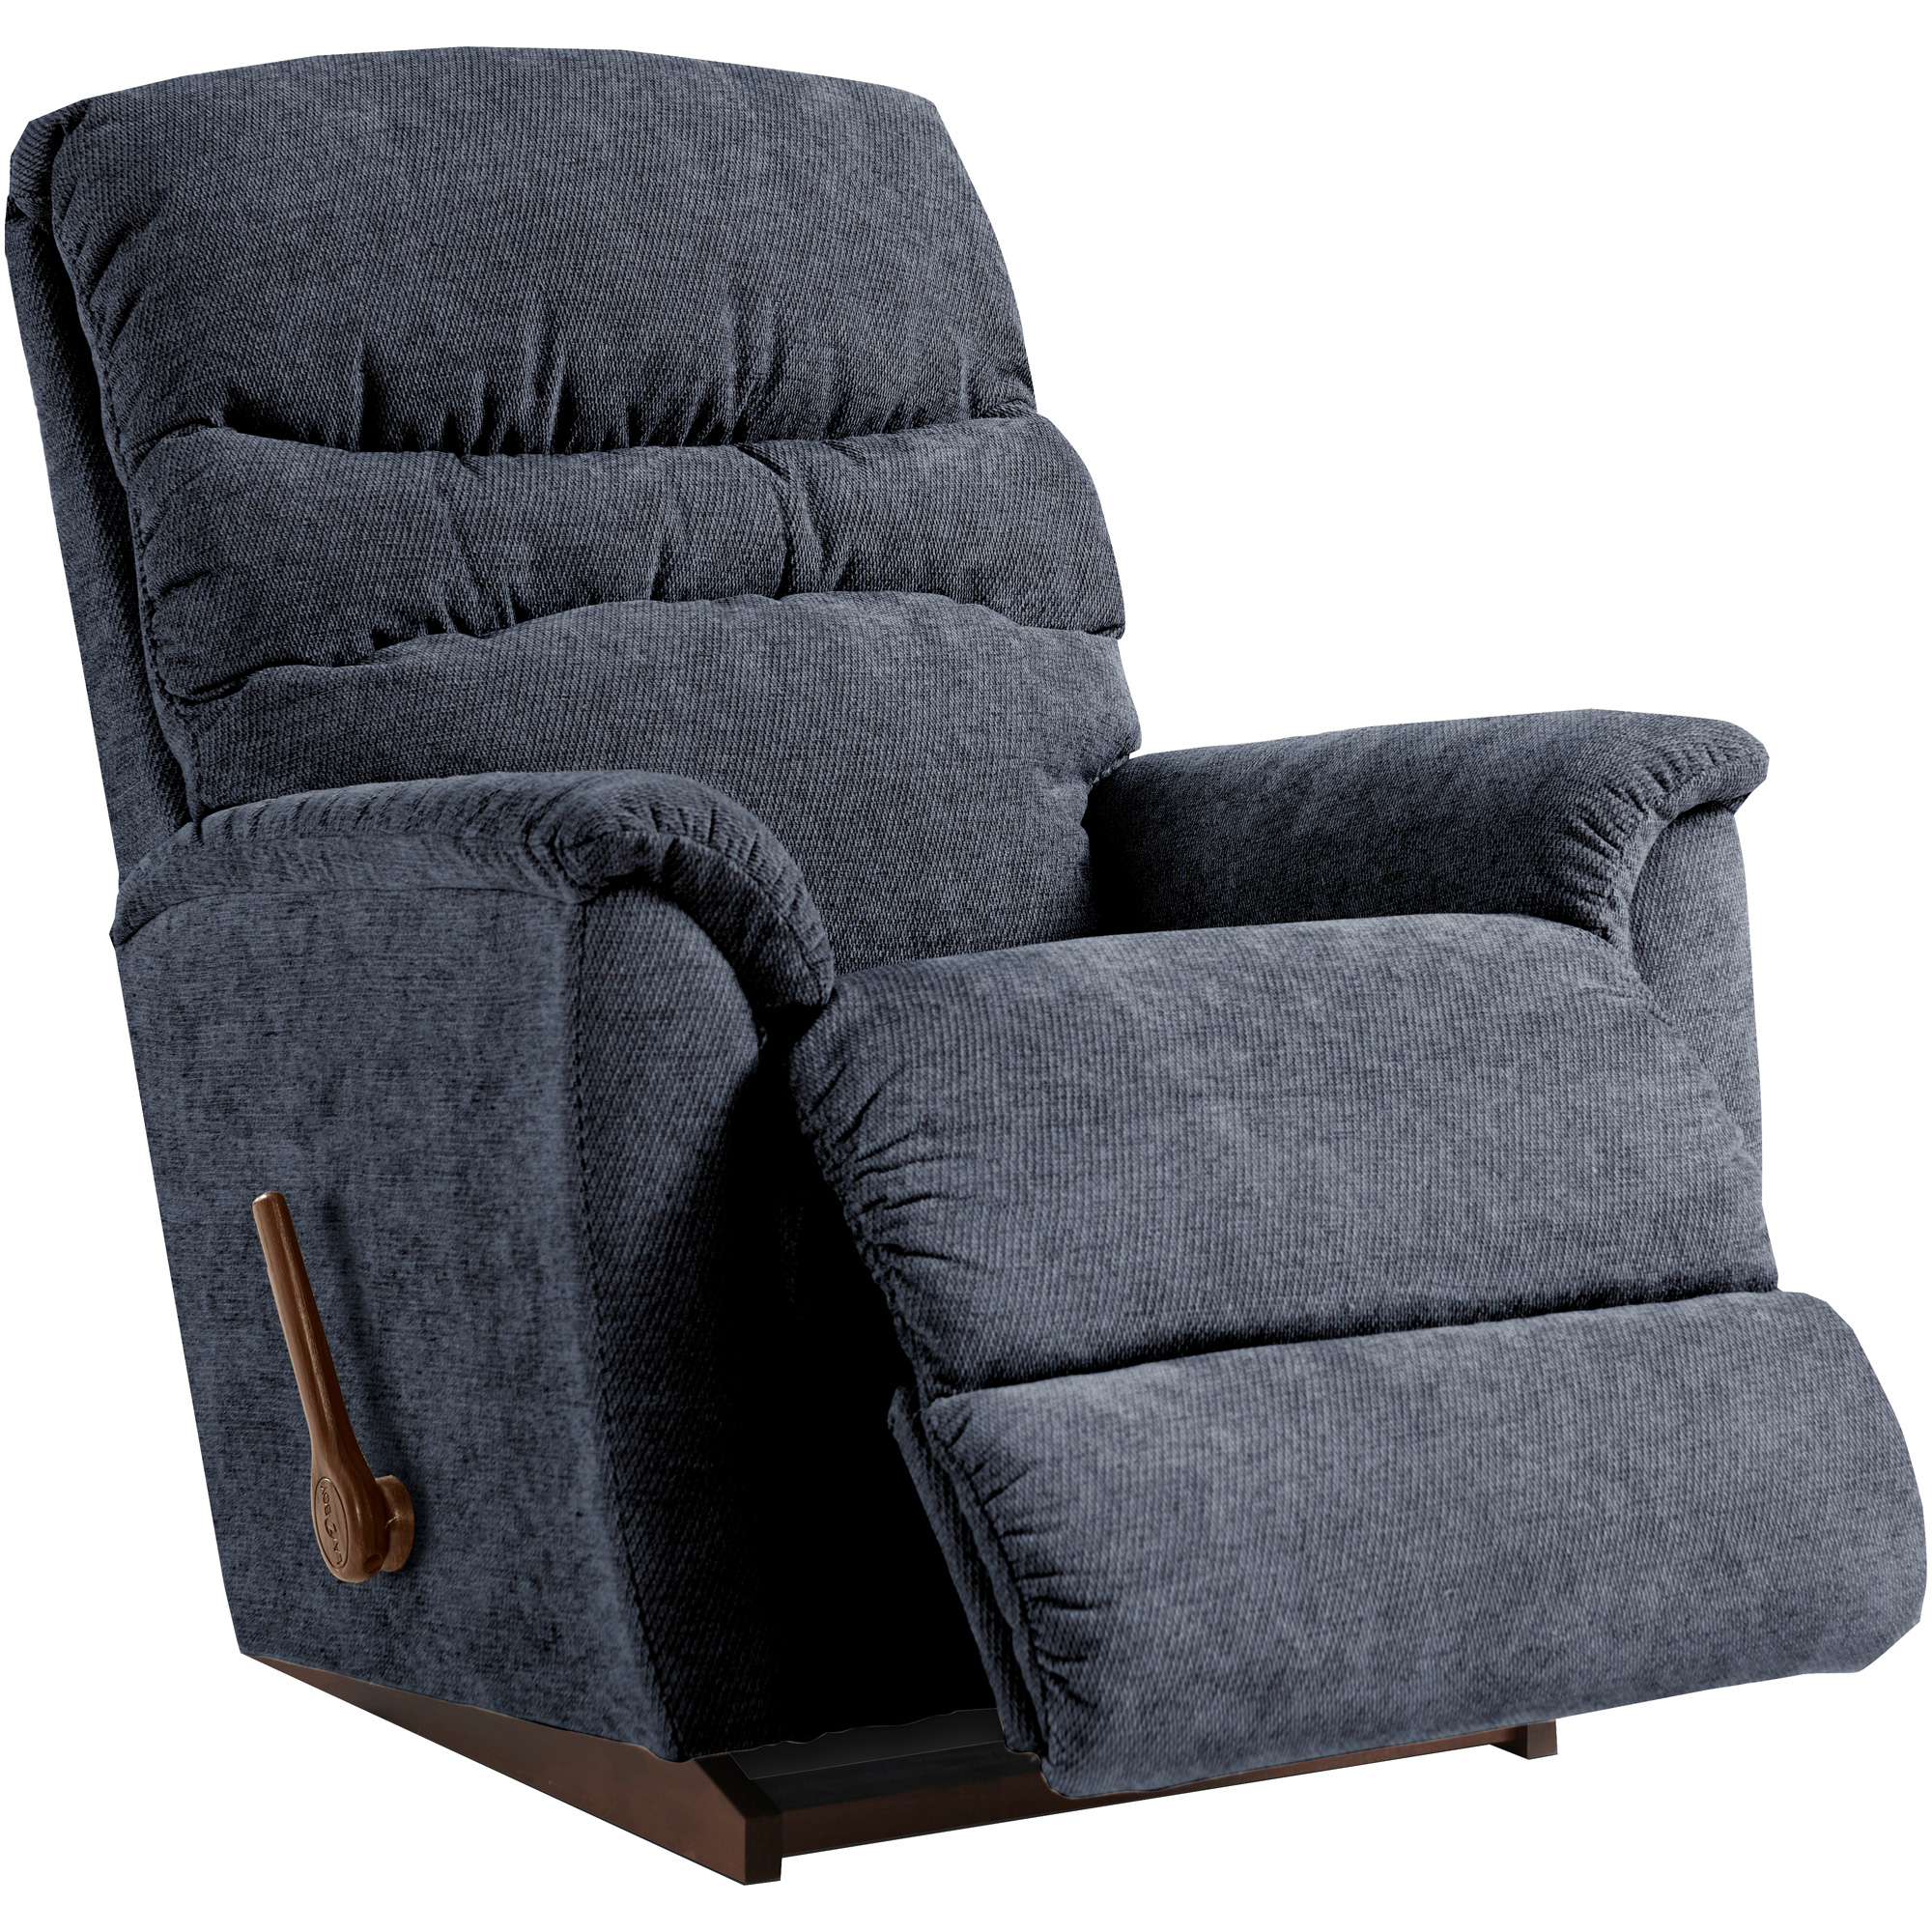 La-Z-Boy | Coleman Navy Rocker Recliner Chair